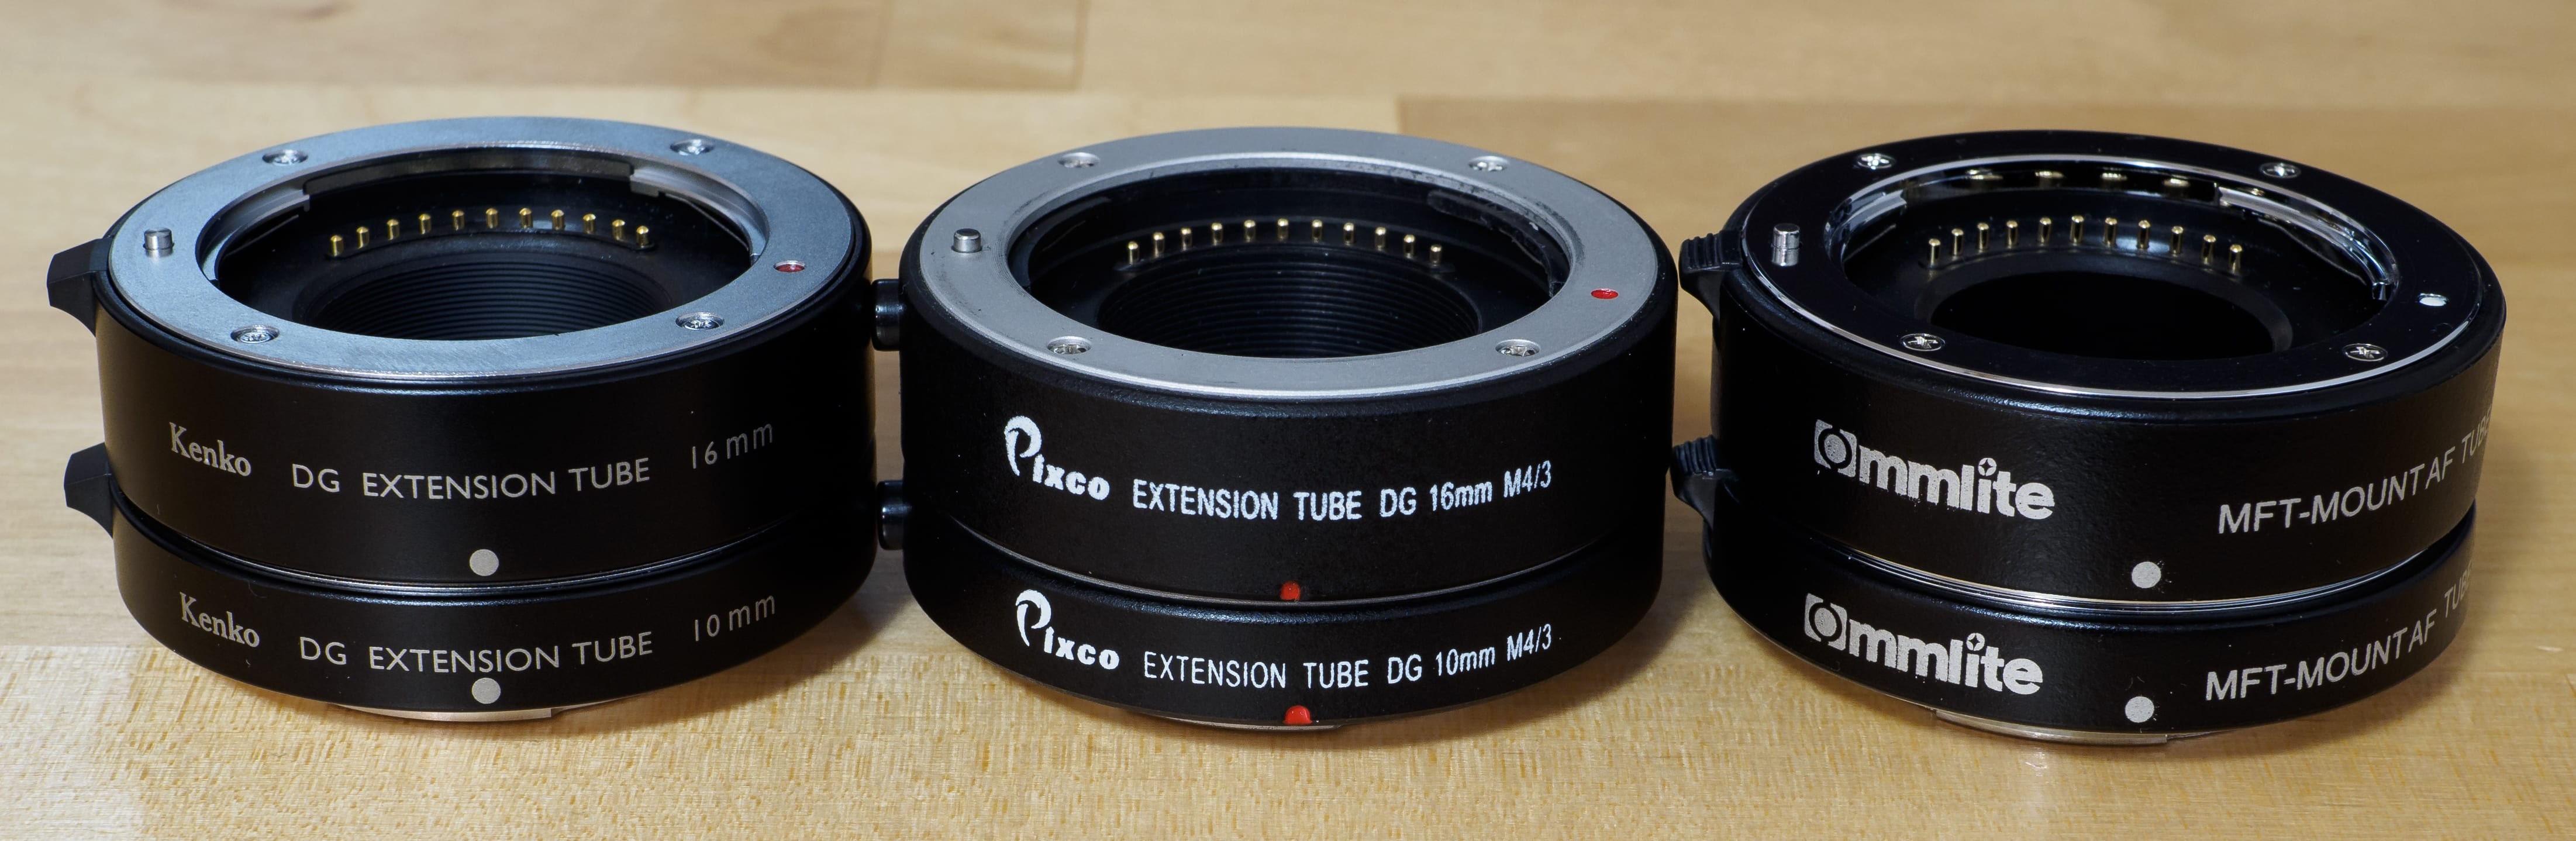 Macro extension tubes (description)